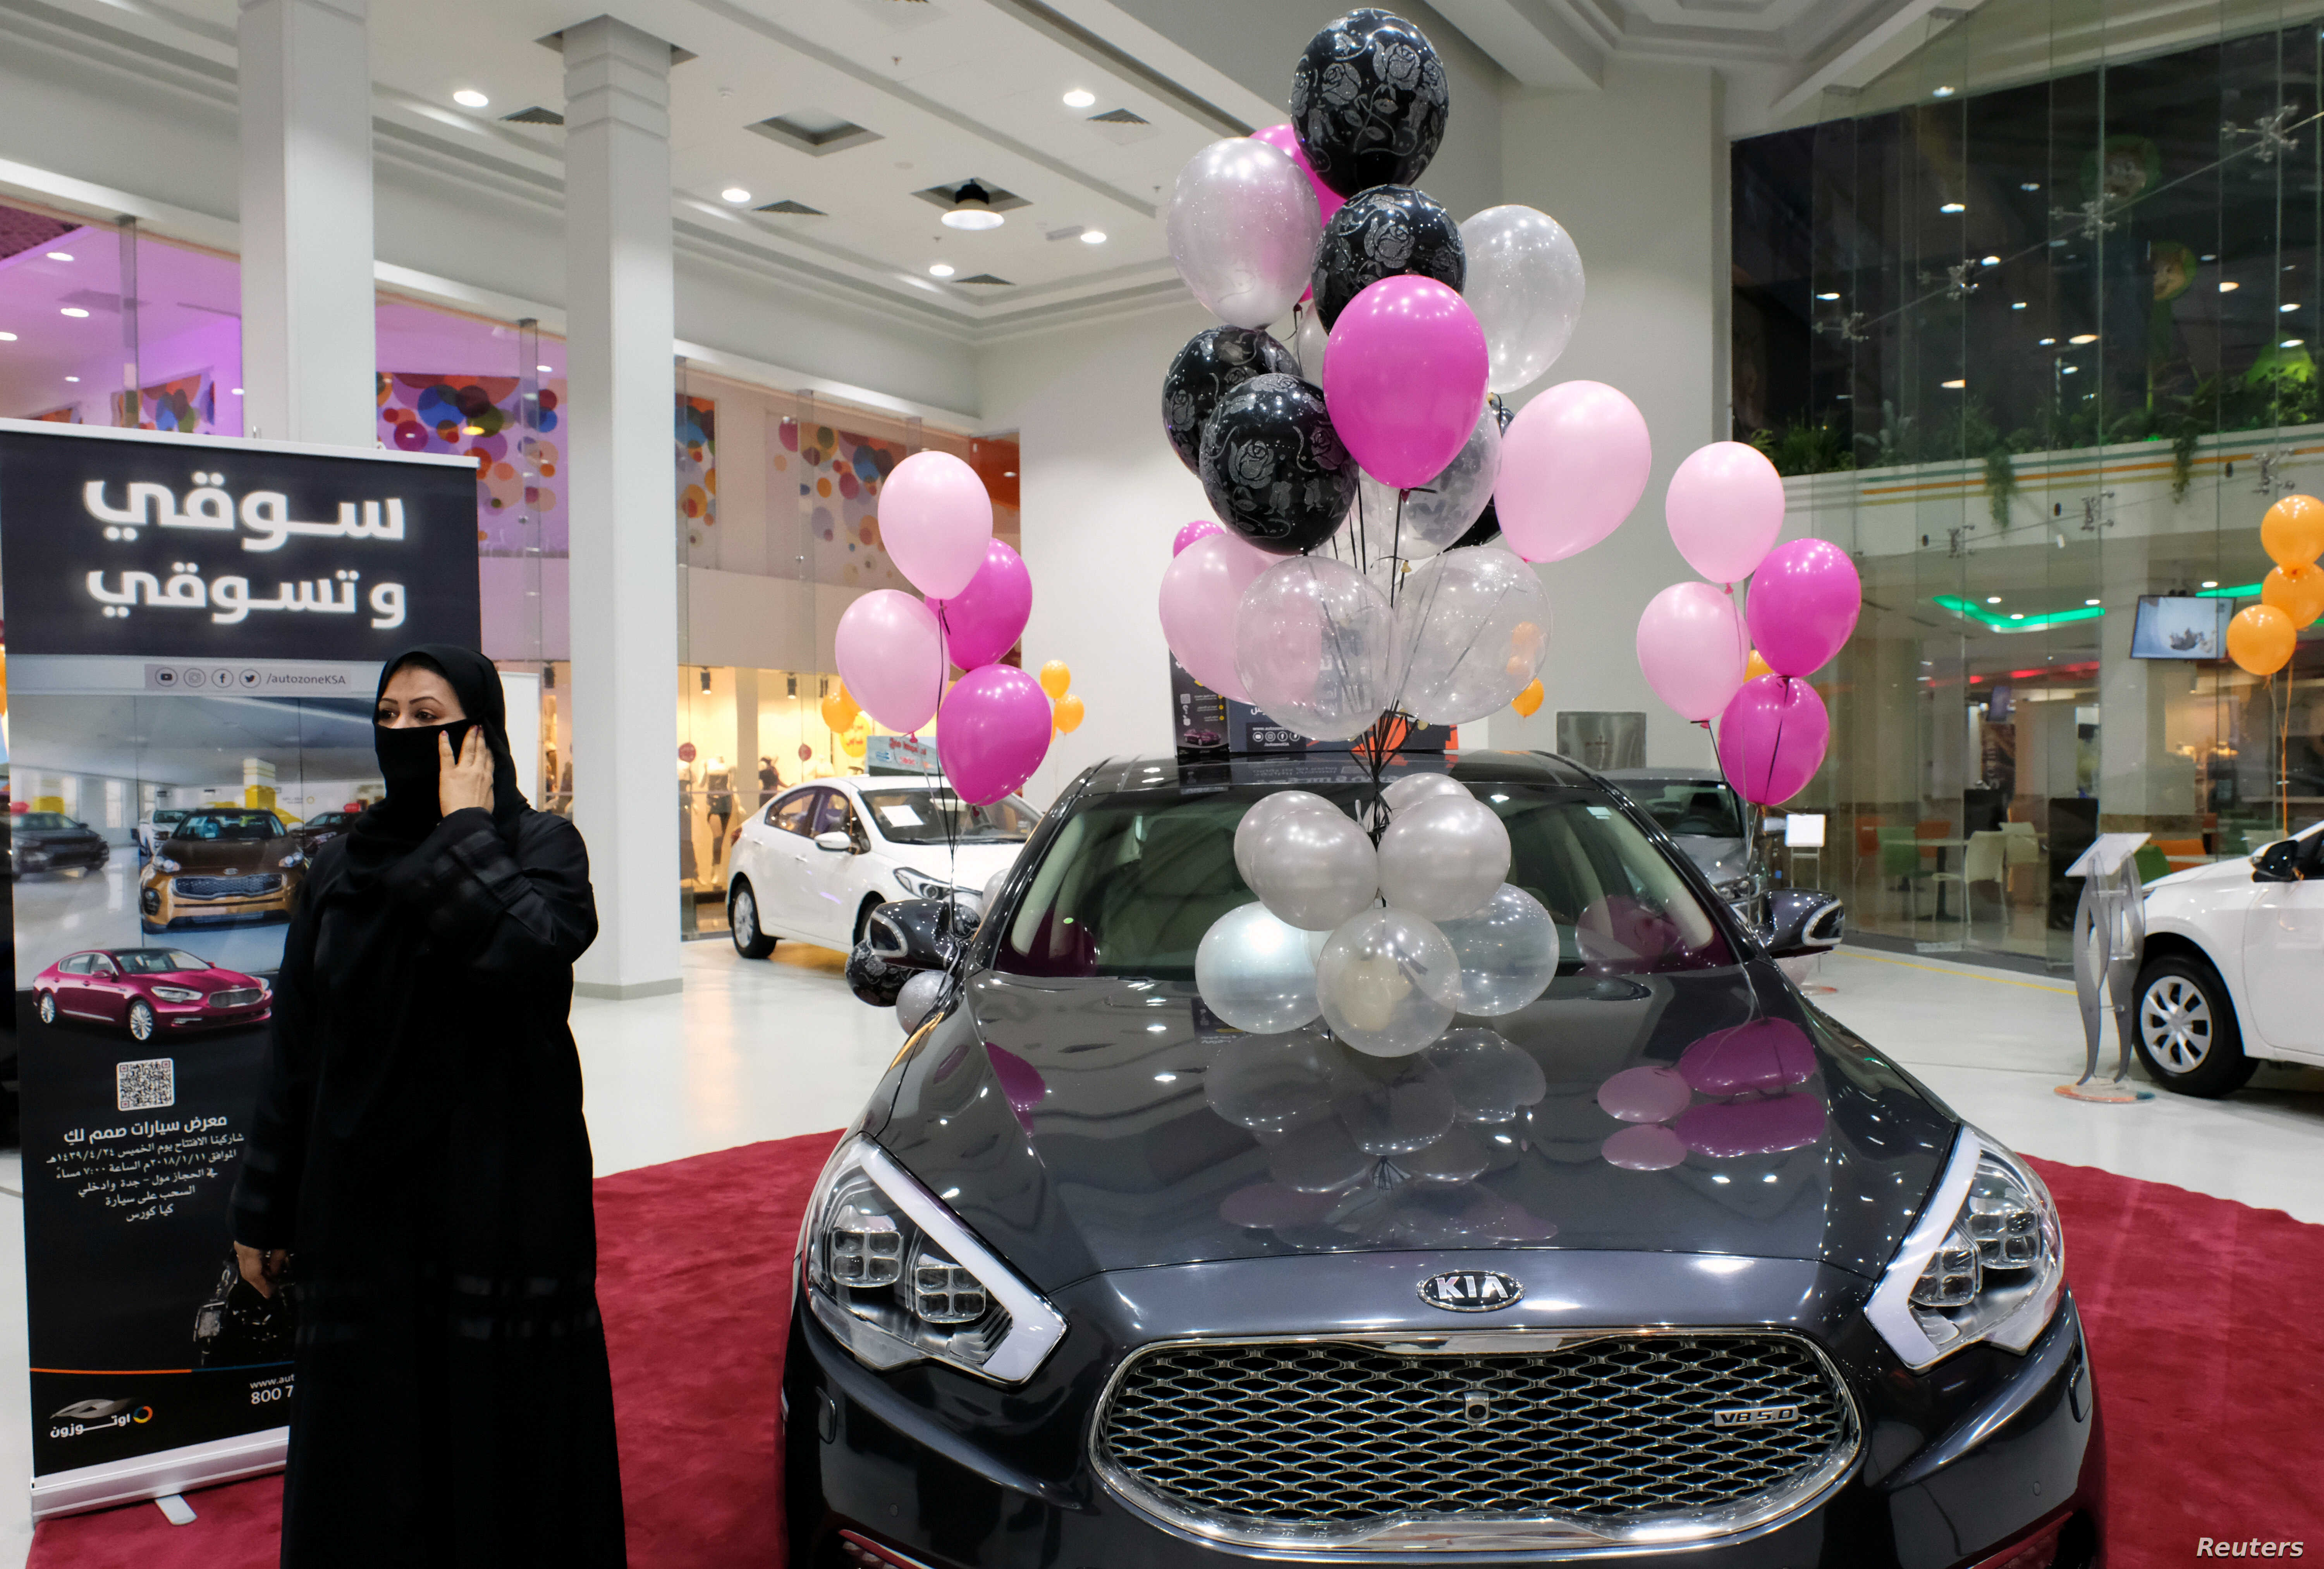 Saudis Open Car Showroom Just for Women | Voice of America - English